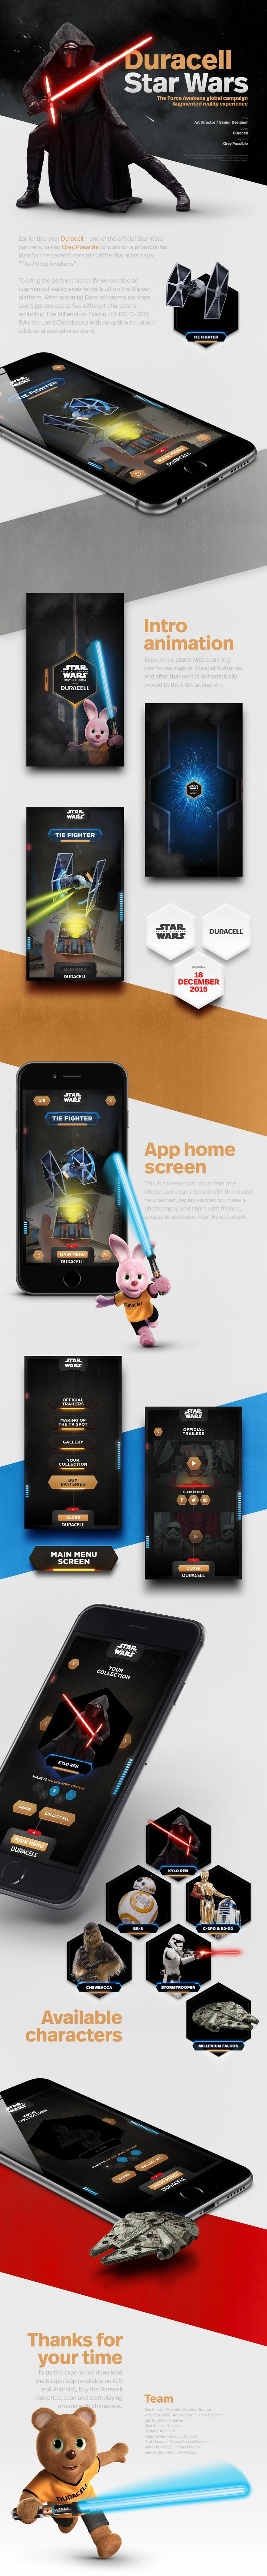 """Duracell x Star Wars –– """"The Force Awakens"""" on Behance"""